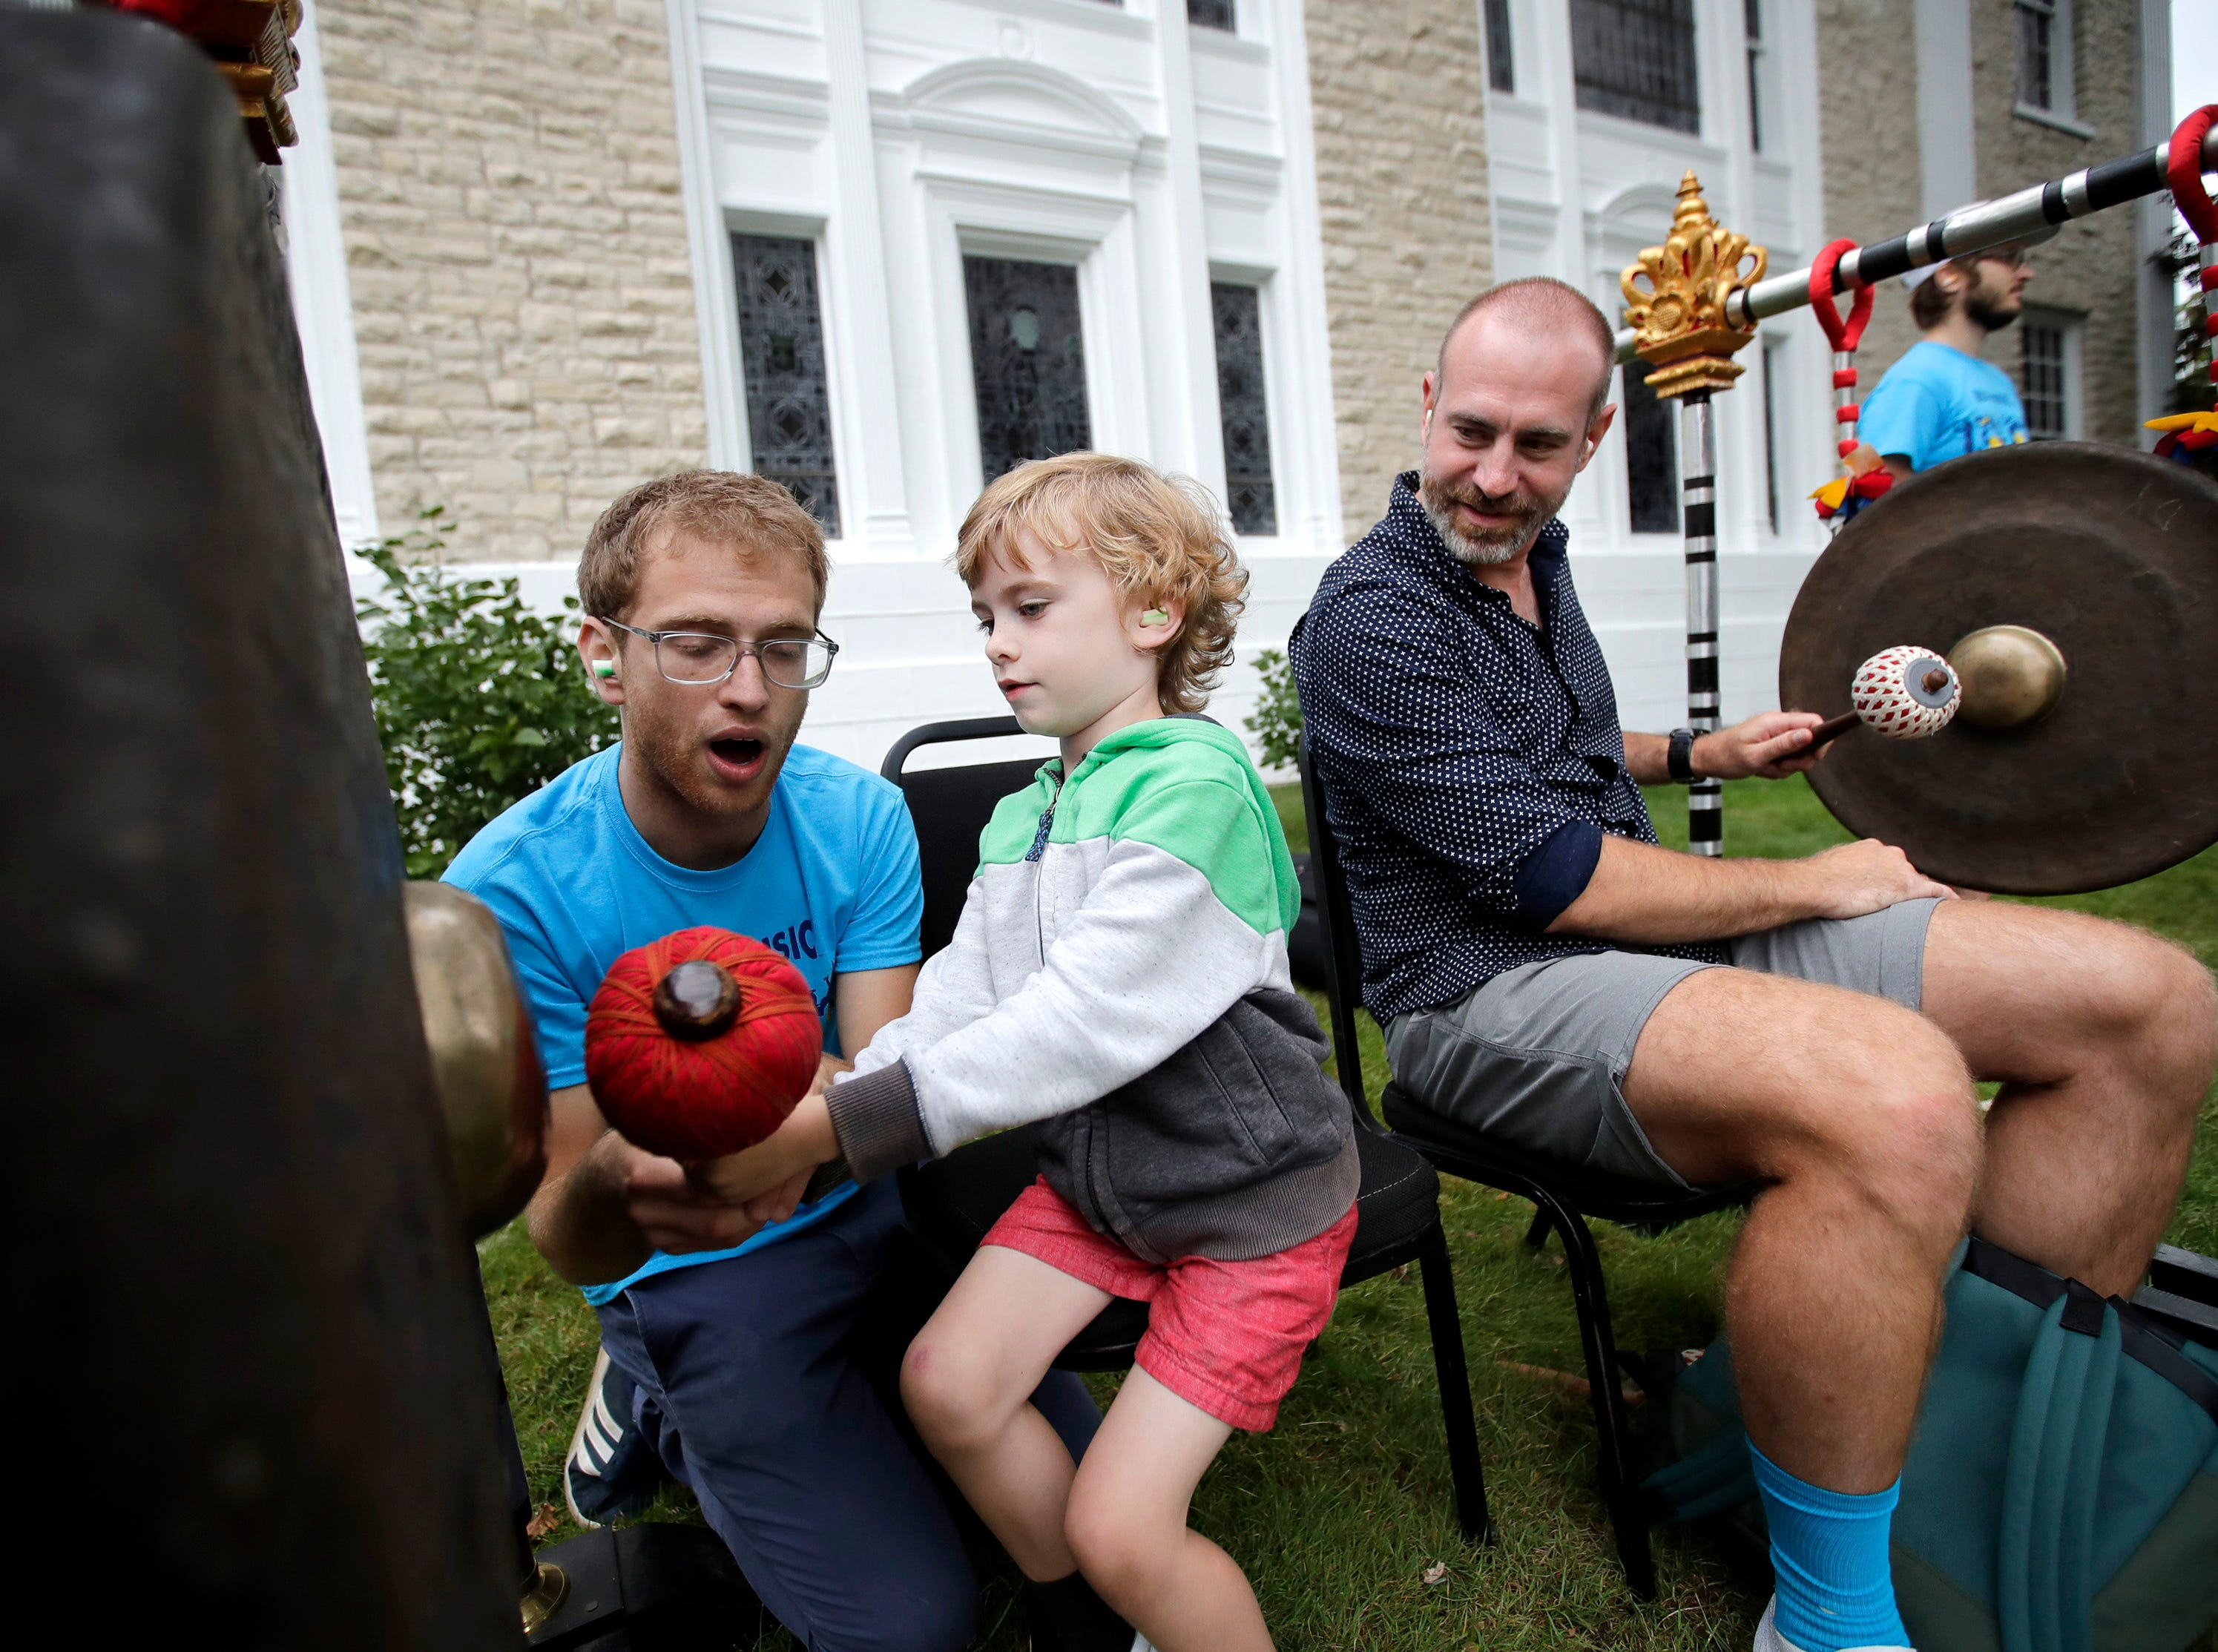 Ilan Blanck, with the music education team, helps Benji Brozek, 6, play a gong with his father Jason at the Balinese Gamelan music education workshop during the first day of Mile of Music Thursday, Aug. 2, 2018, in Appleton, Wis.Danny Damiani/USA TODAY NETWORK-Wisconsin